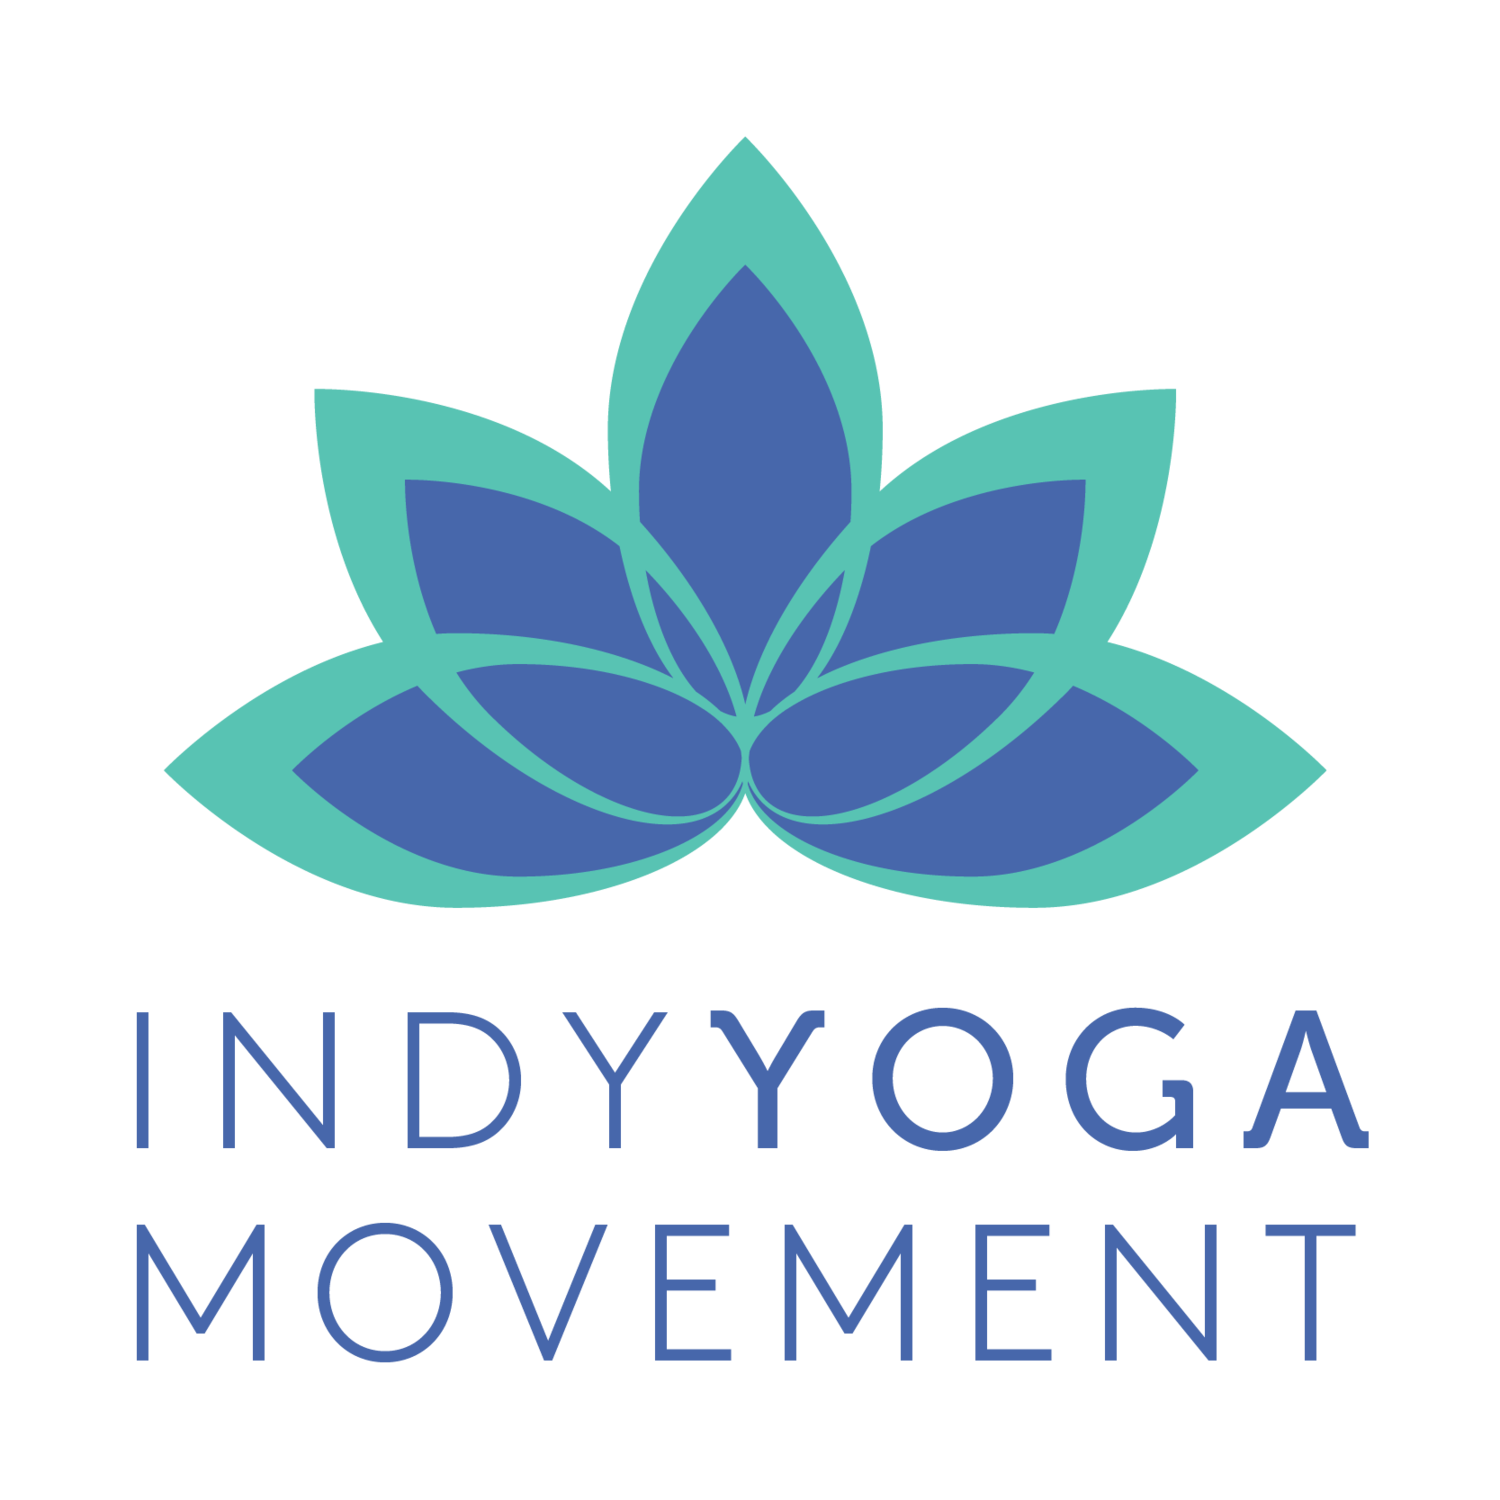 Indy Yoga Movement